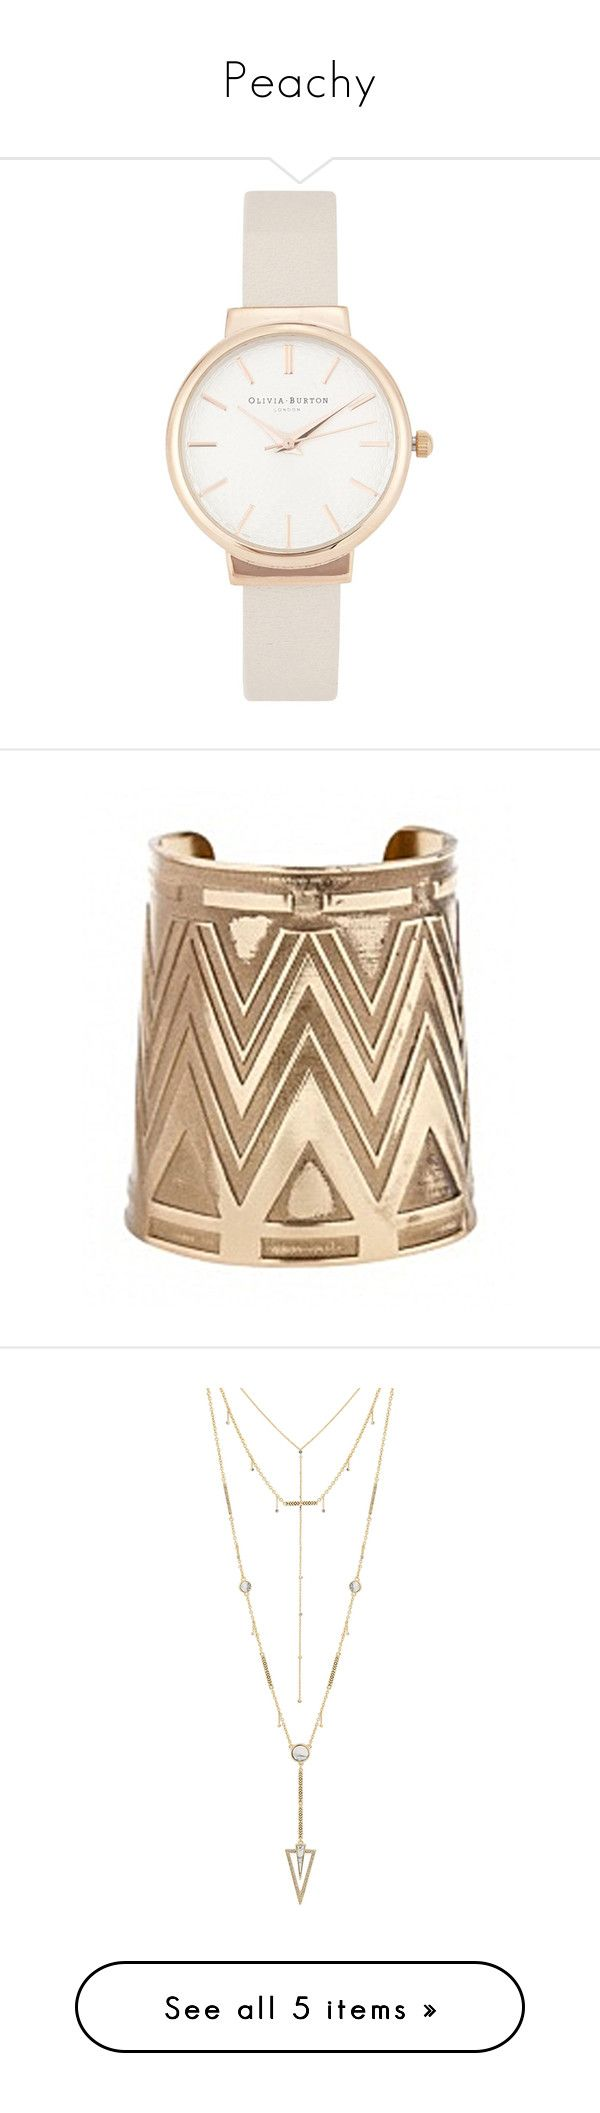 Peachy by eraj-addae on Polyvore featuring polyvore, women's fashion, jewelry, watches, accessories, bracelets, montre, olivia burton, olivia burton watches, dial watches, rose gold plated jewelry, none, house of harlow 1960, yellow gold jewelry, tribal jewelry, gold jewelry, tribal jewellery, necklaces, neck, howlite, house of harlow 1960 jewelry, statement necklace, gold tone necklace, gold tone jewelry, shoes, pumps, heels, wedges, nude blush, nude pumps, peep toe wedge pumps, platform…